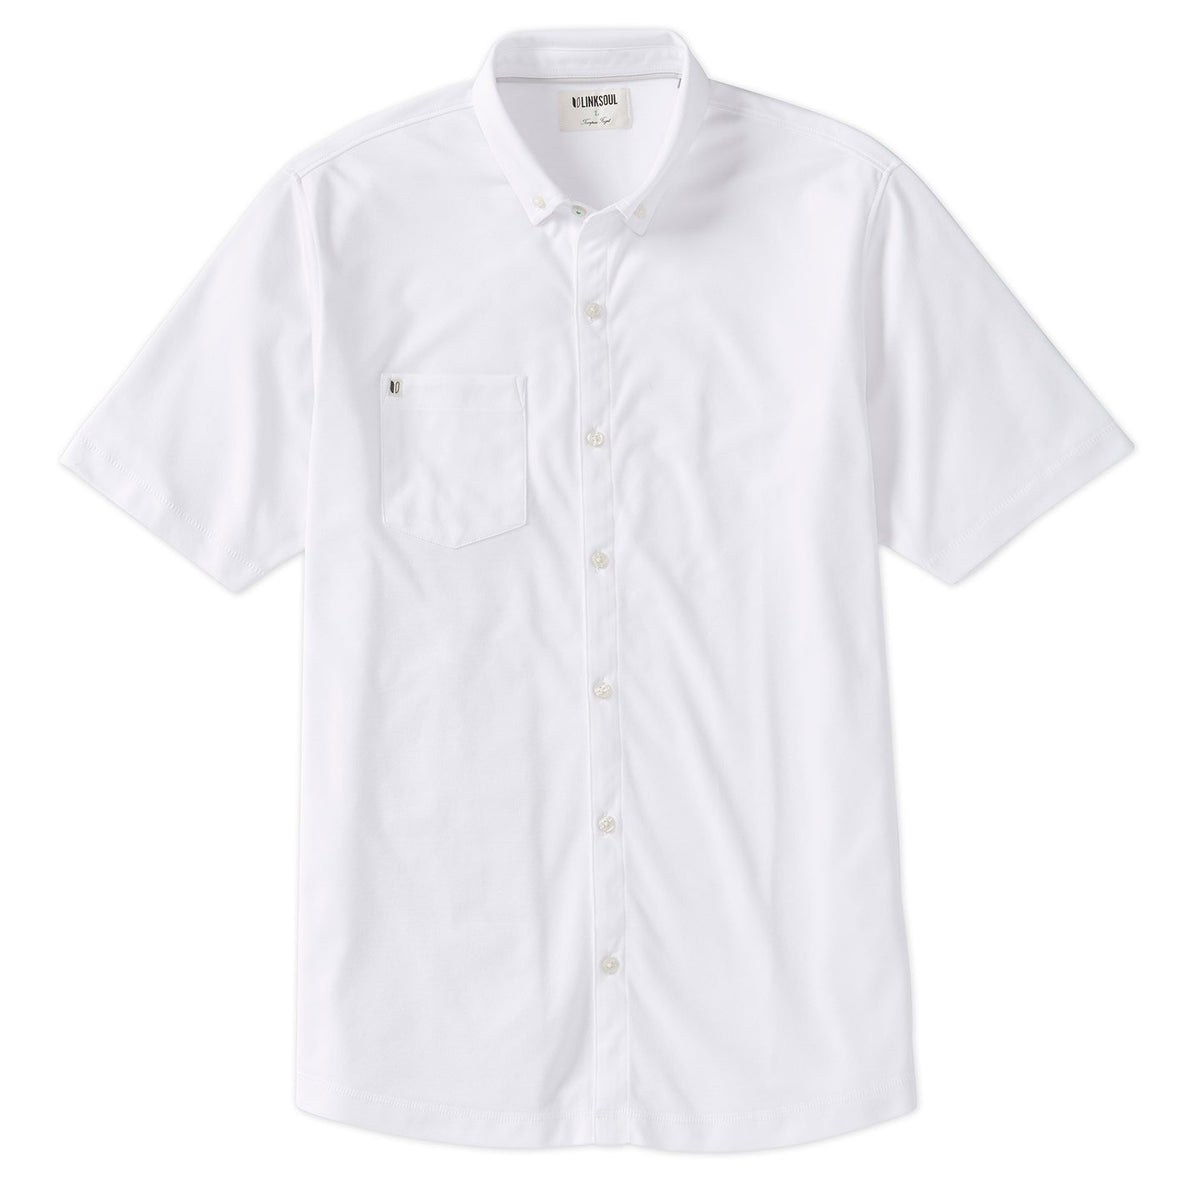 Oxford Full-Button Short Sleeve